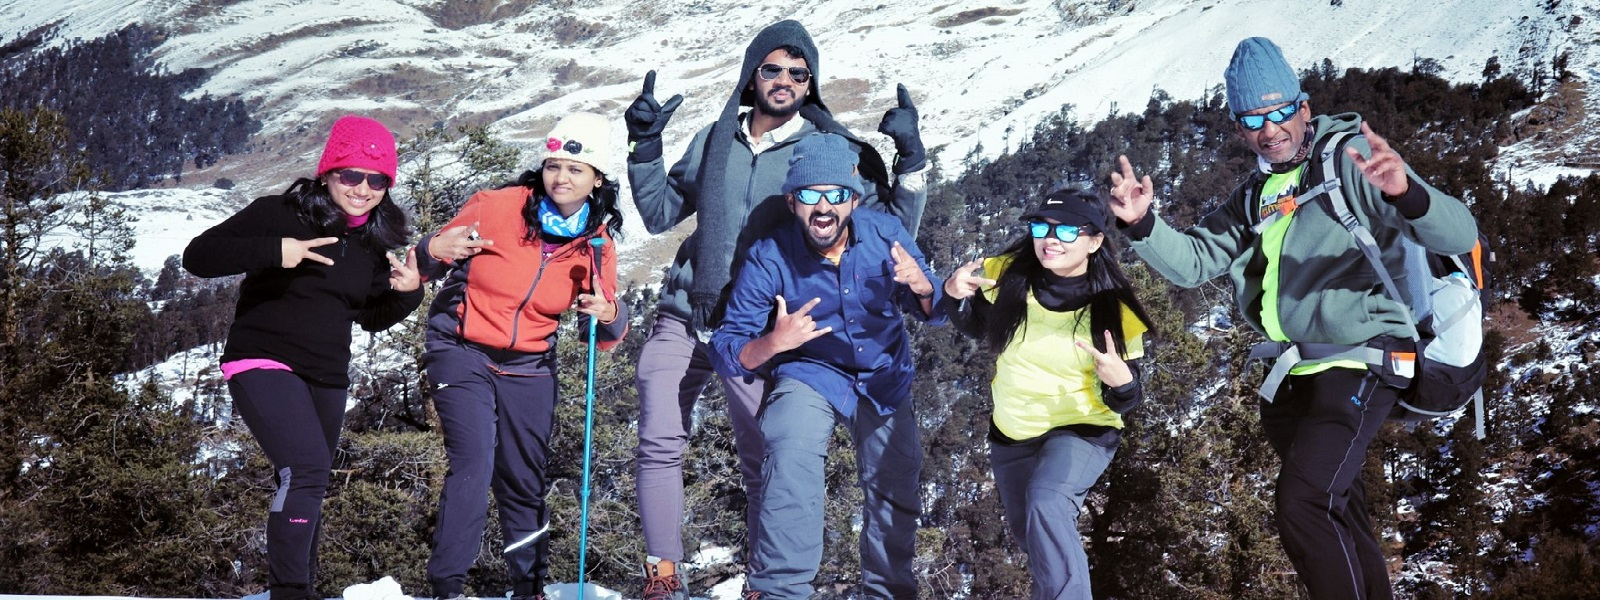 Brahmatal Trek - Best Winter Treks in Uttarakhand